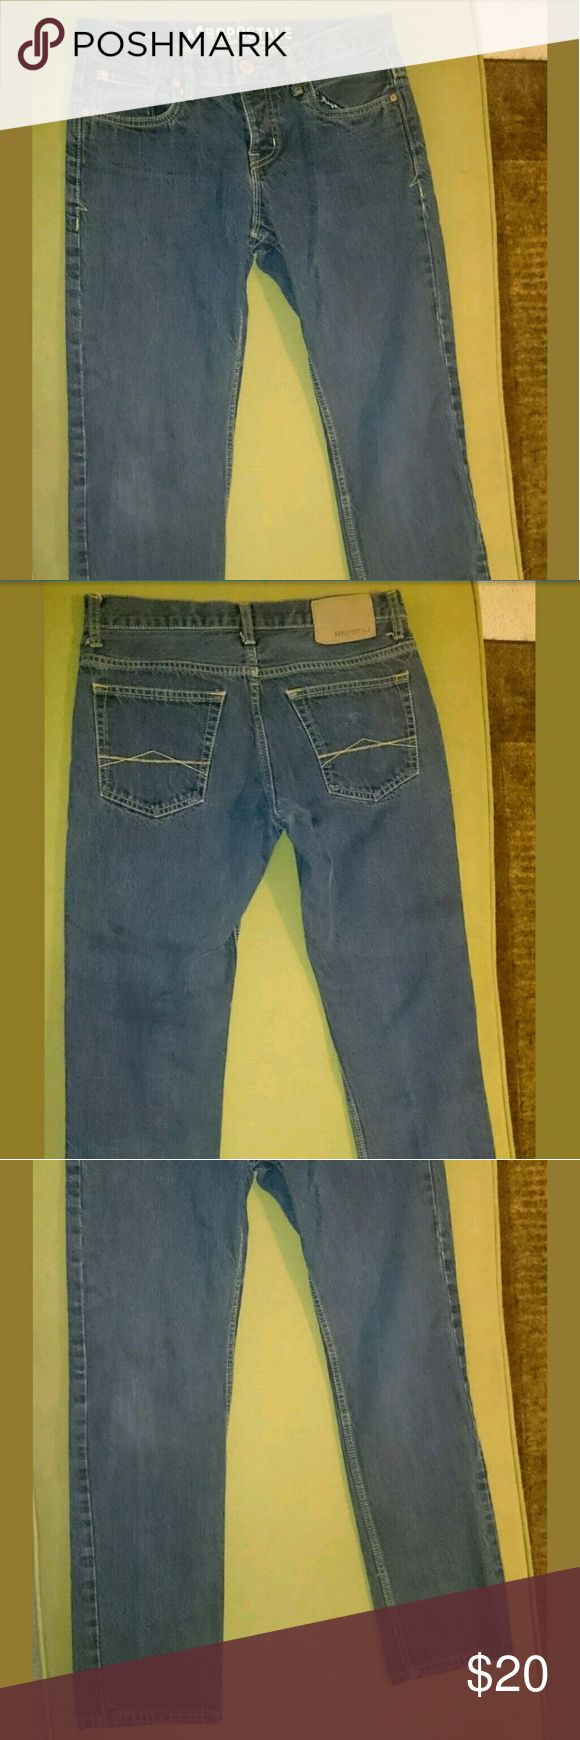 MENS AEROPOSTALE SLIM STRAIGHT BUTTON FLY JEANS Item is in great shape. Size 30x30, button fly, bowery slim straight legged. Comes from smoke free home. Aeropostale Jeans Slim Straight